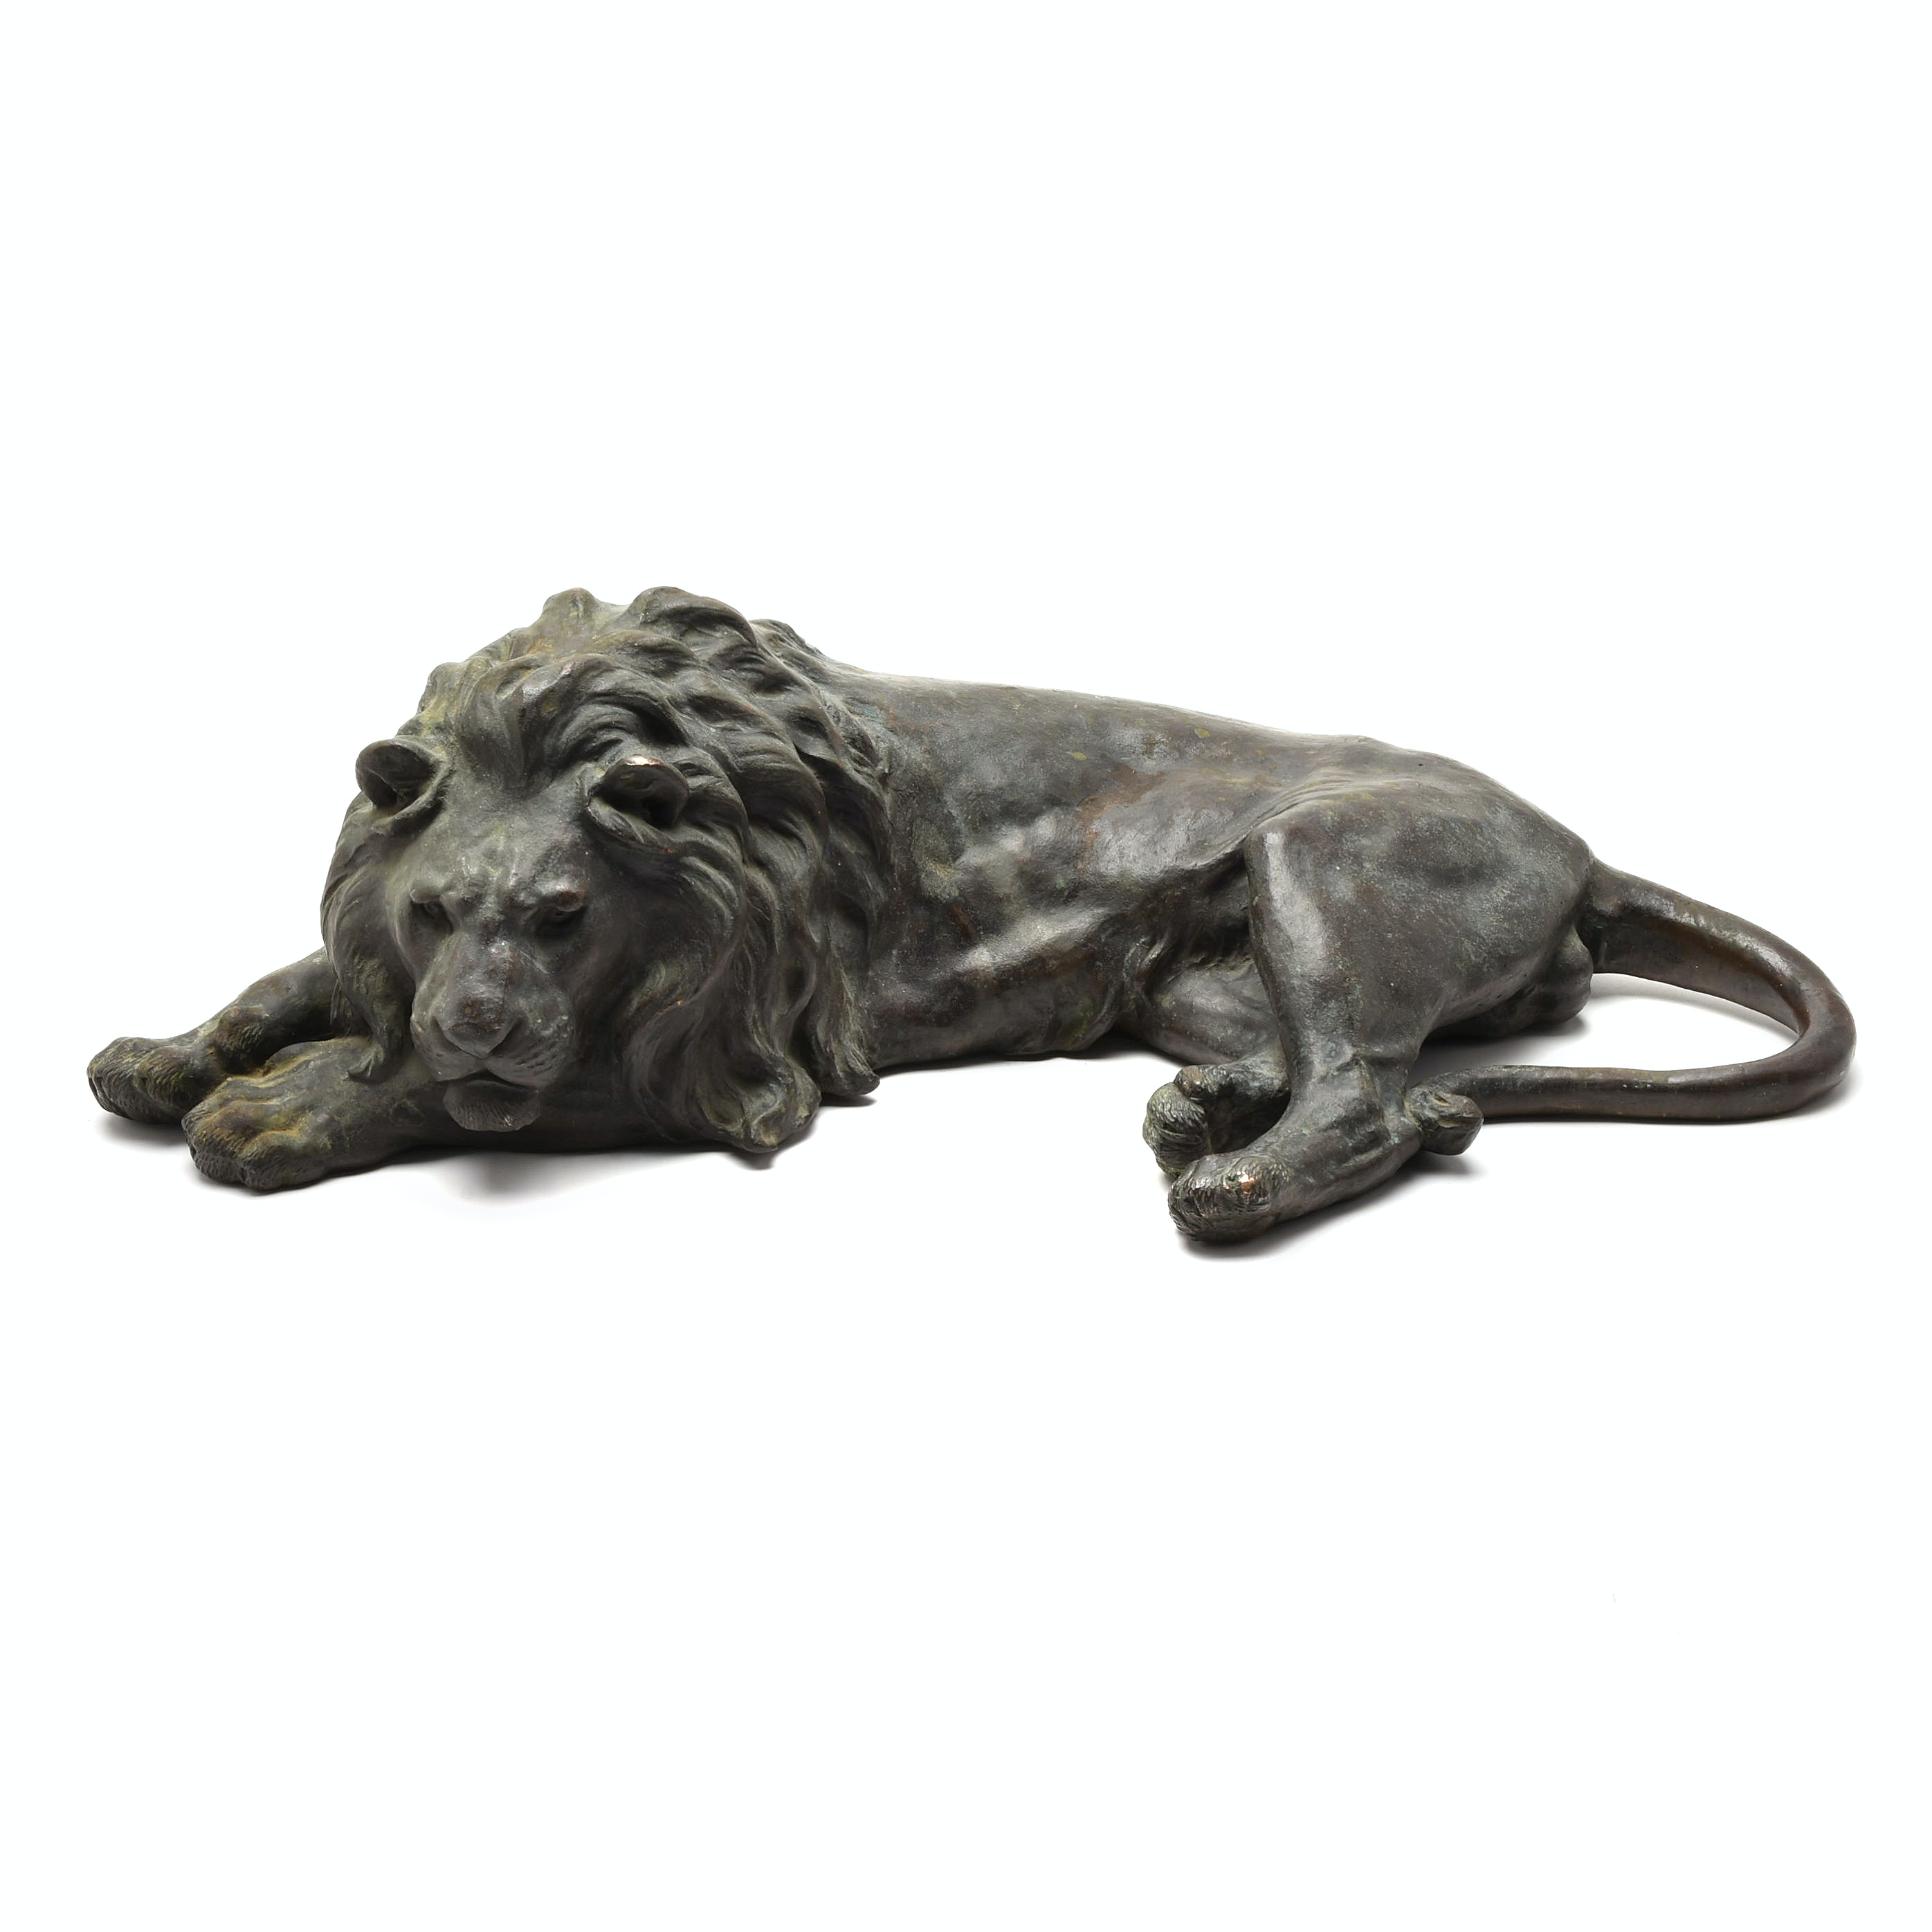 Japanese Cast Bronze Laying Lion Sculpture